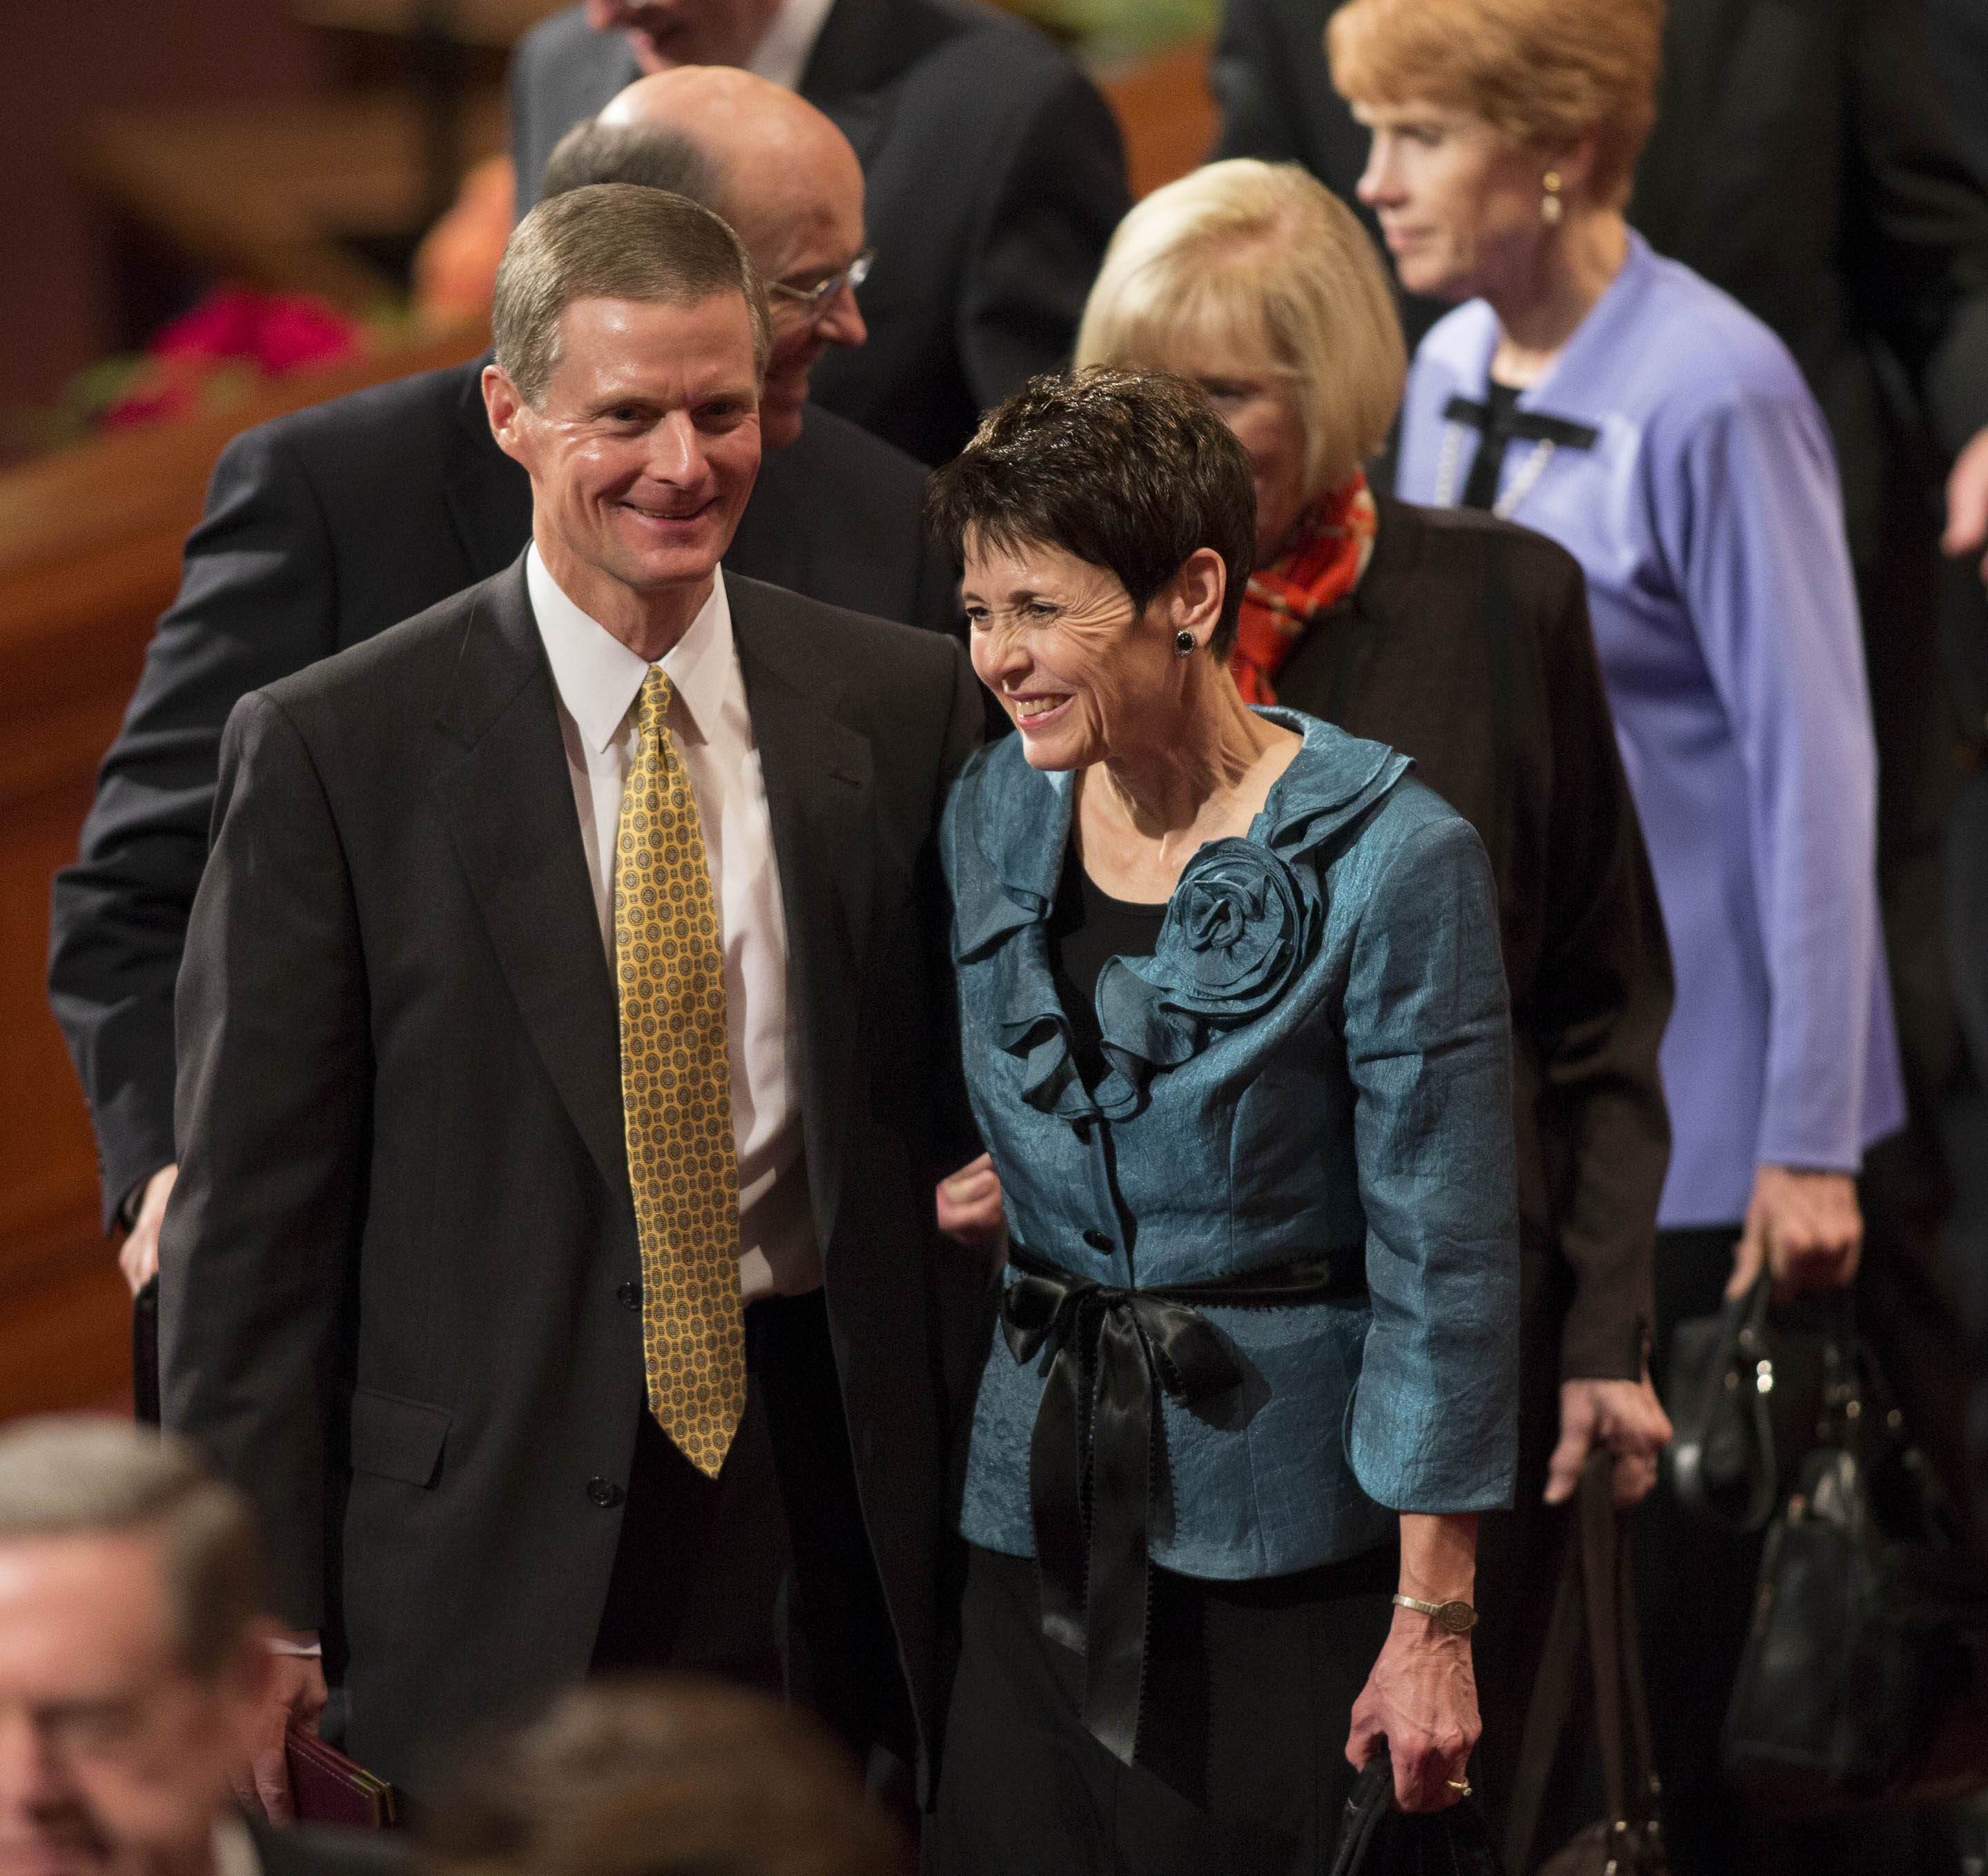 Elder David A. Bednar and his wife, Sister Susan Kae Bednar, exit the stand following the Sunday afternoon session of the 183rd Semiannual General Conference on Sunday, Oct. 6, 2013, inside the Conference Center.